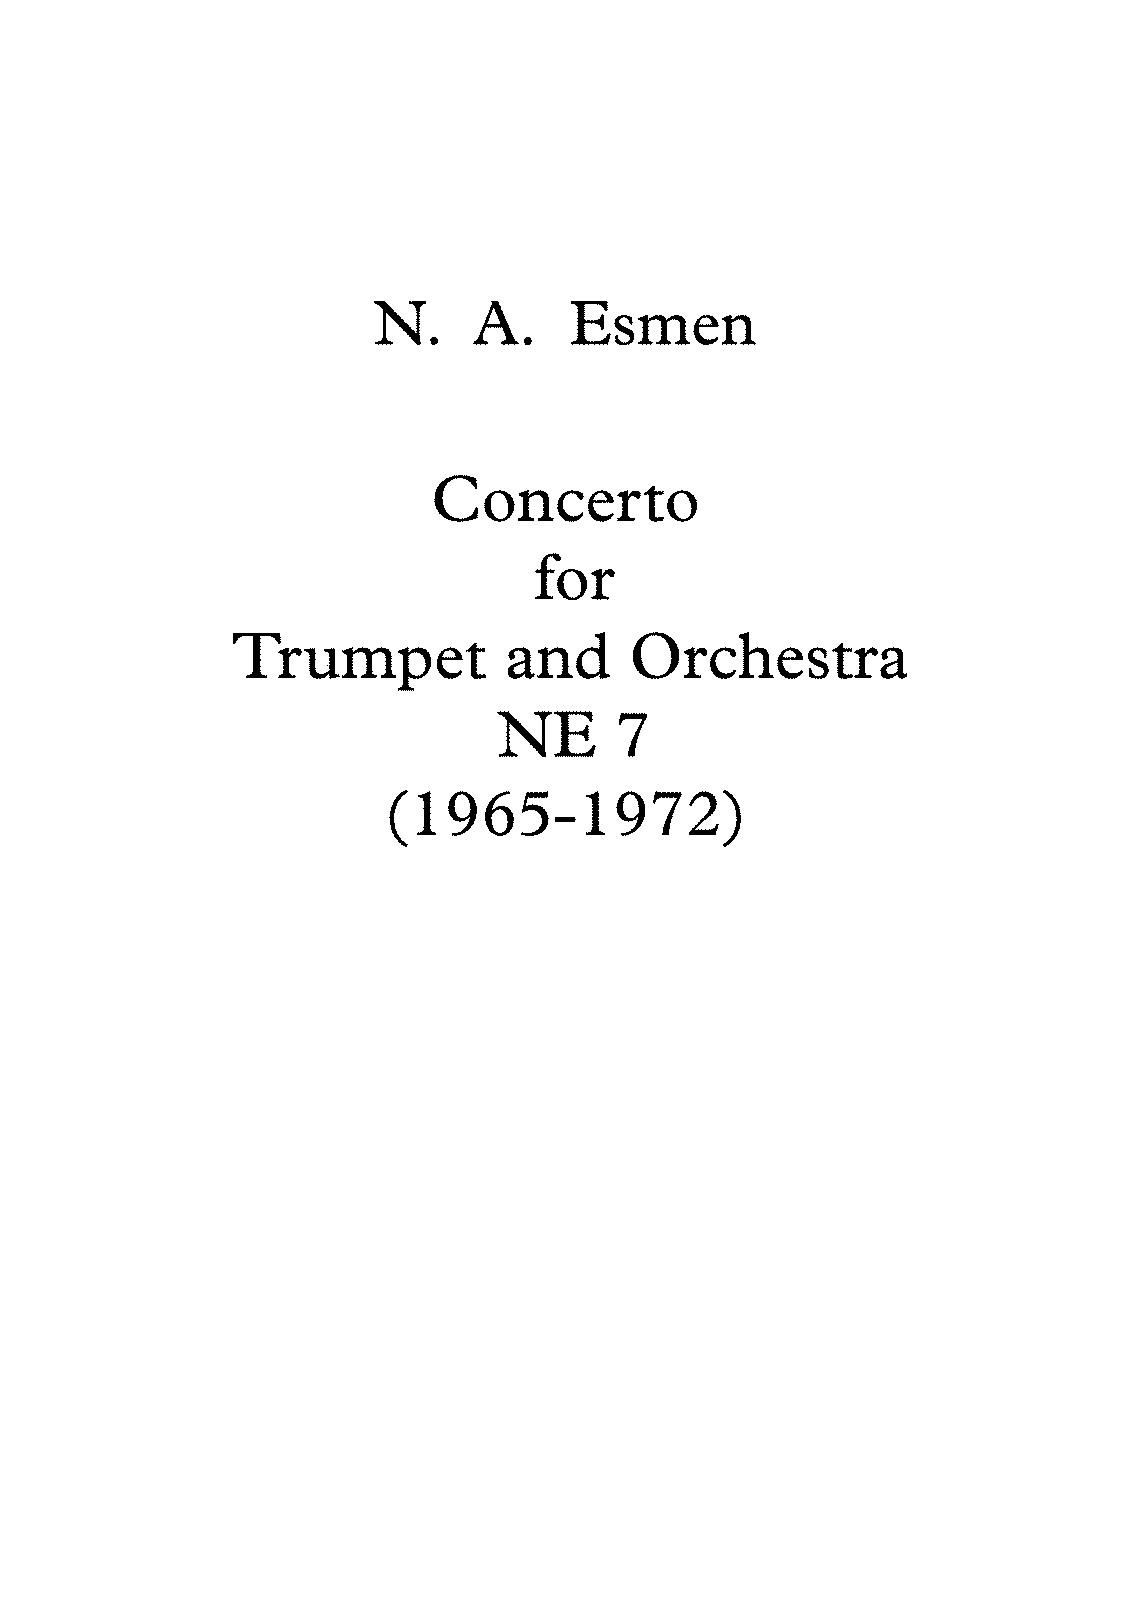 PMLP697977-Concerto for Trumpet and Orchestra - Full Score.pdf